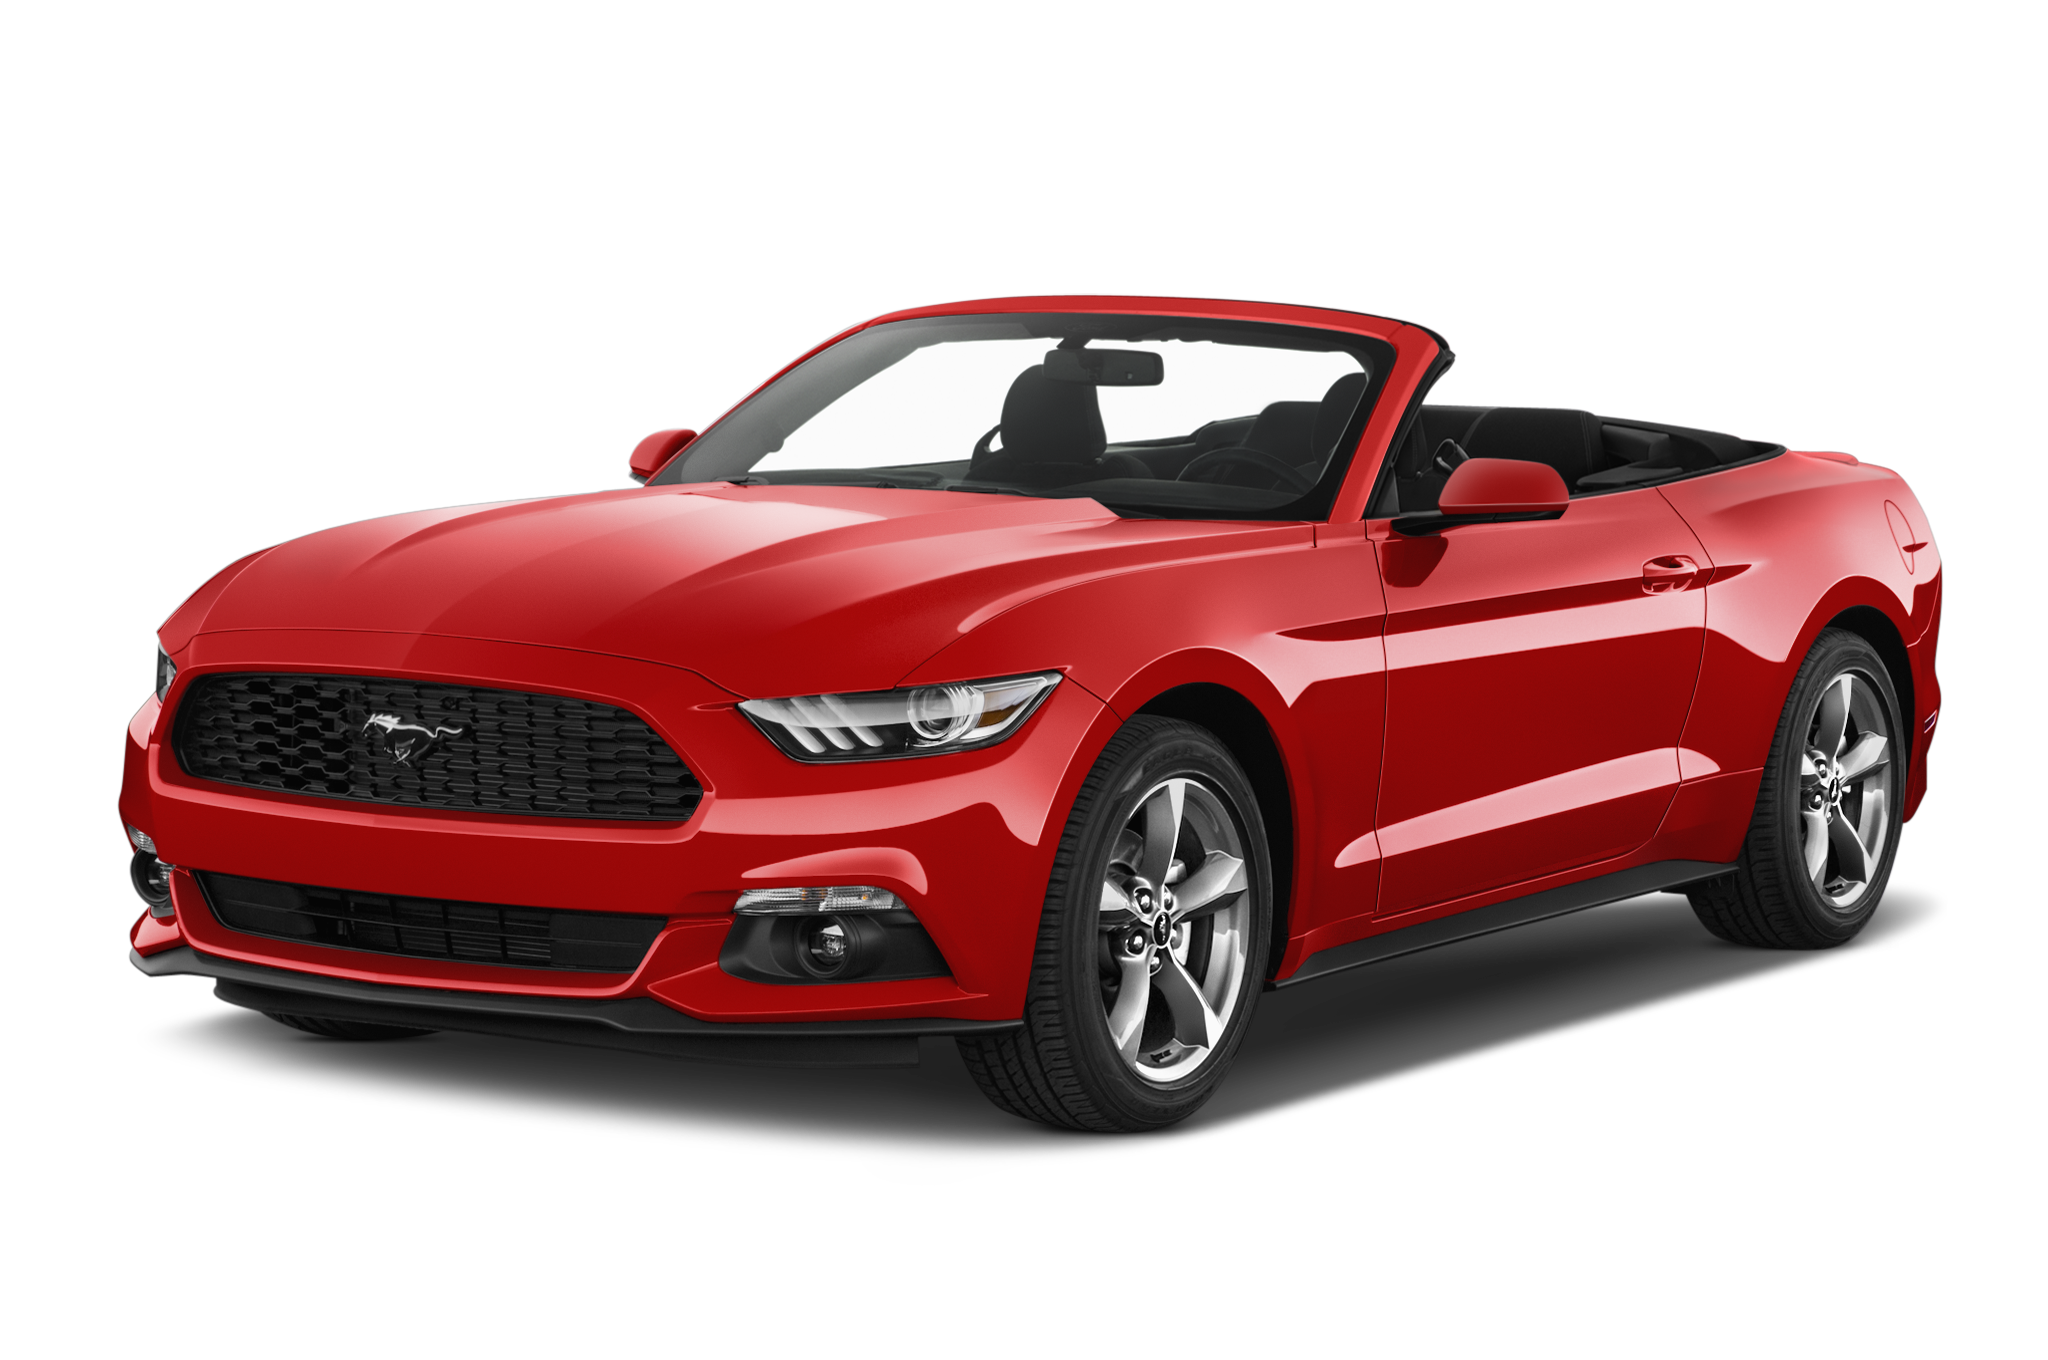 14 Ford Mustang Reviews - Research Mustang Prices & Specs - MotorTrend | ford mustang convertible